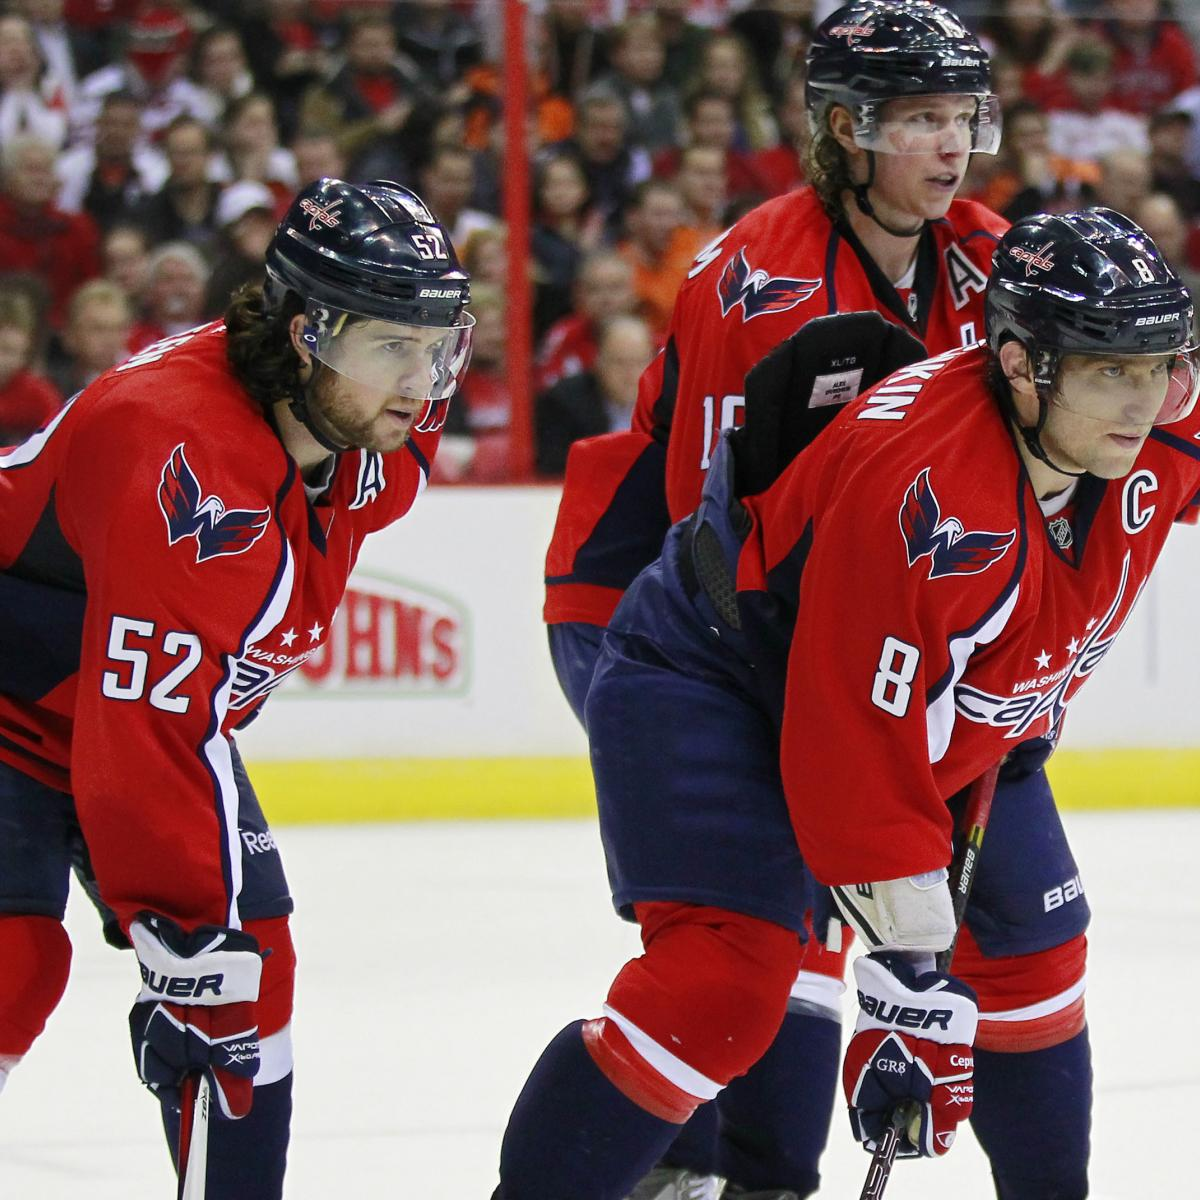 9c02fee54 The One Word That Best Describes Each of Washington Capitals' Top Stars |  Bleacher Report | Latest News, Videos and Highlights